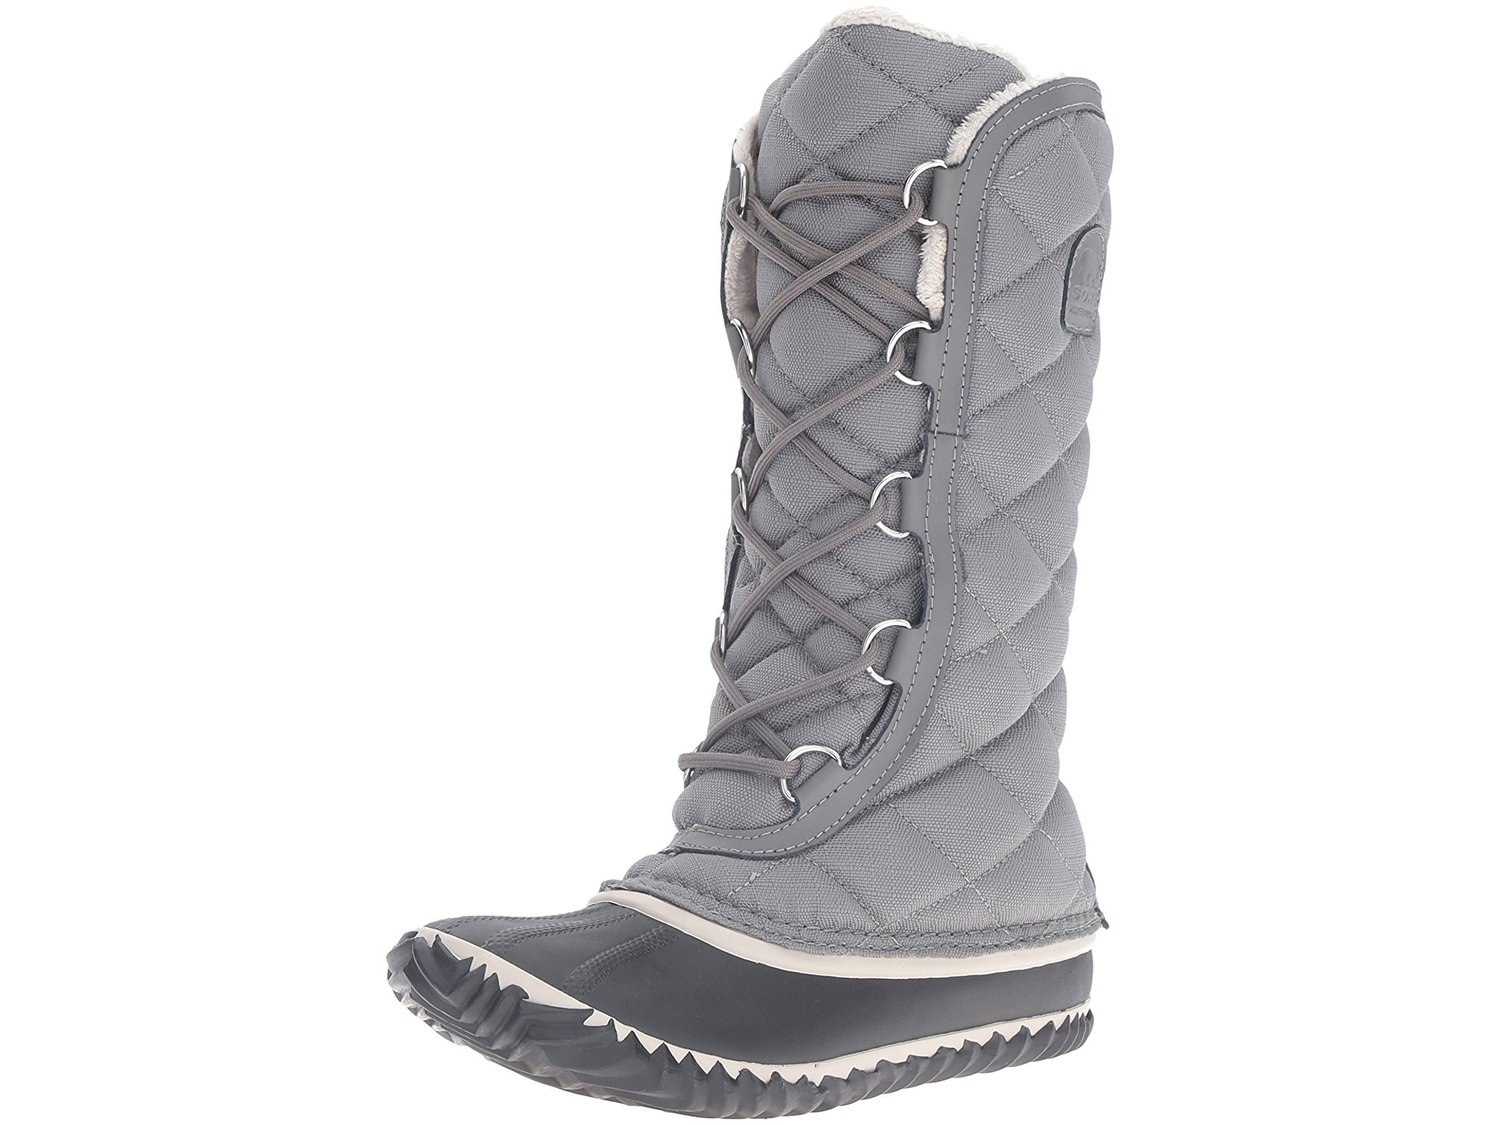 ca0470ce5f4 SOREL Womens out n about Closed Toe Knee High Cold Weather Boots, Grey,  Size 5.0